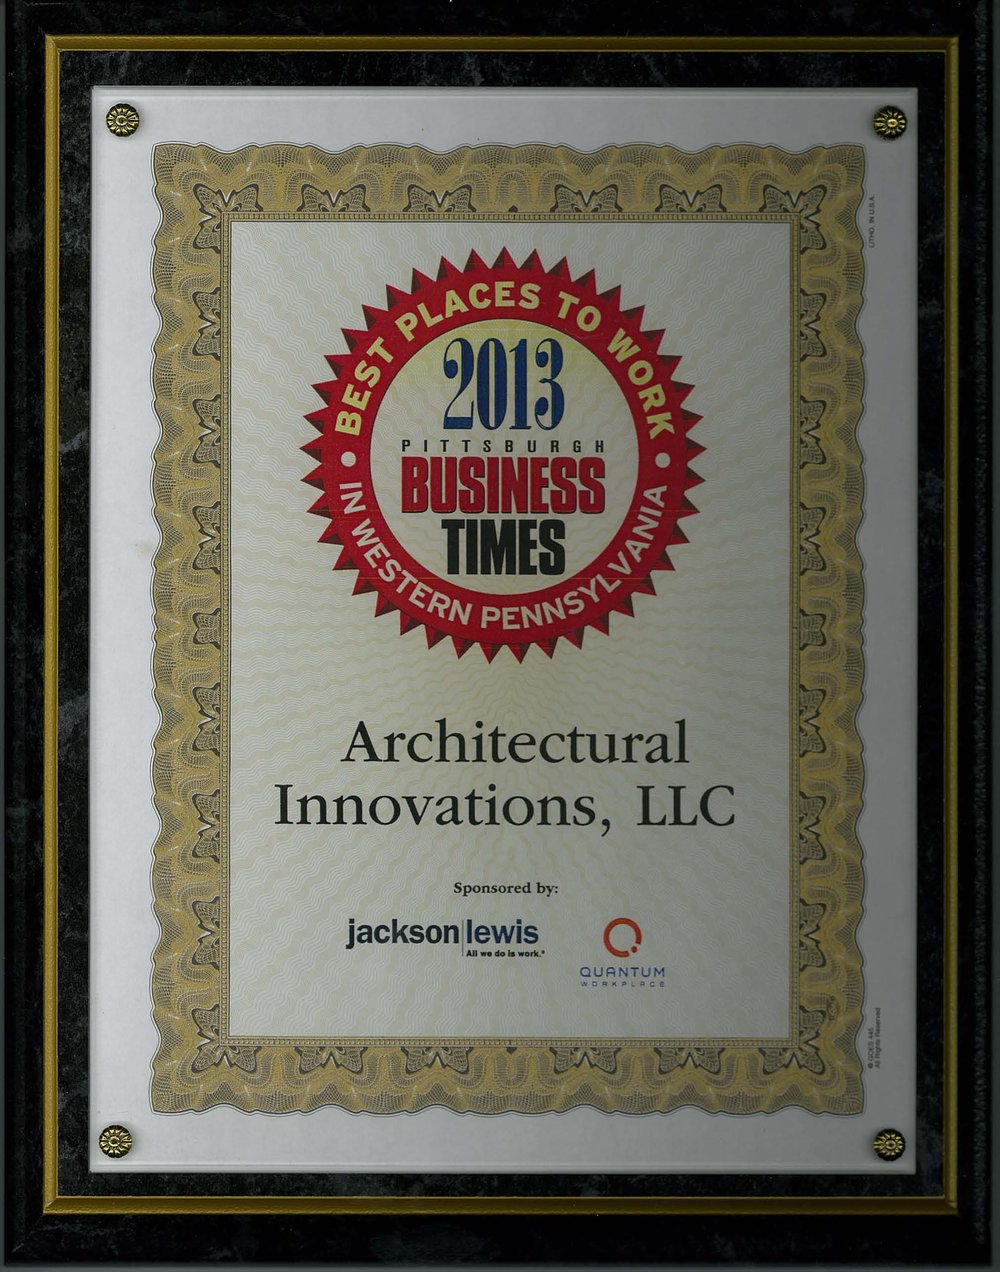 Pbt best places architectural innovations 2013 best places to work pittsburgh business times jeuxipadfo Image collections